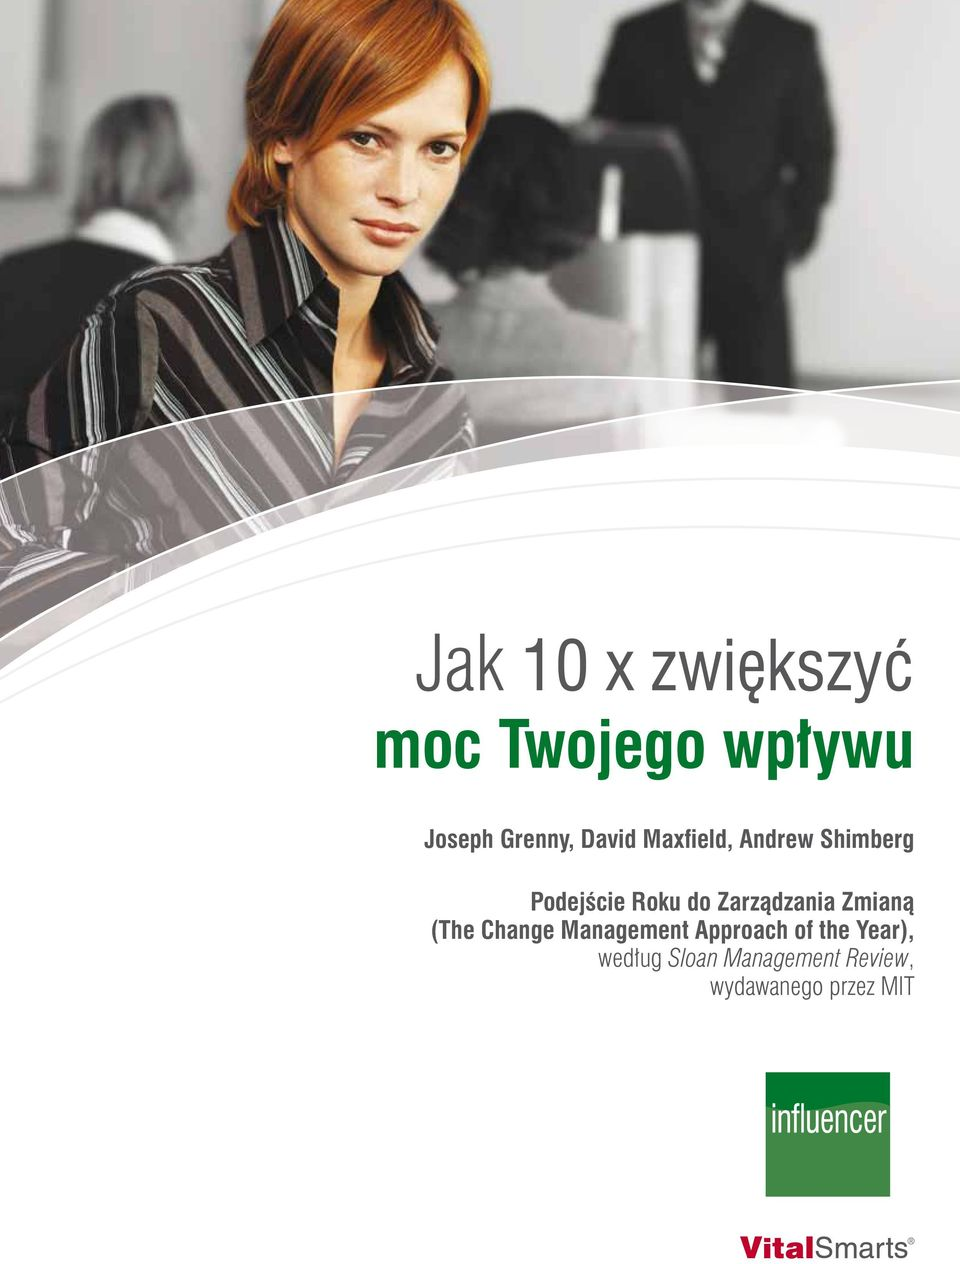 (The Change Management Approach of the Year), według Sloan